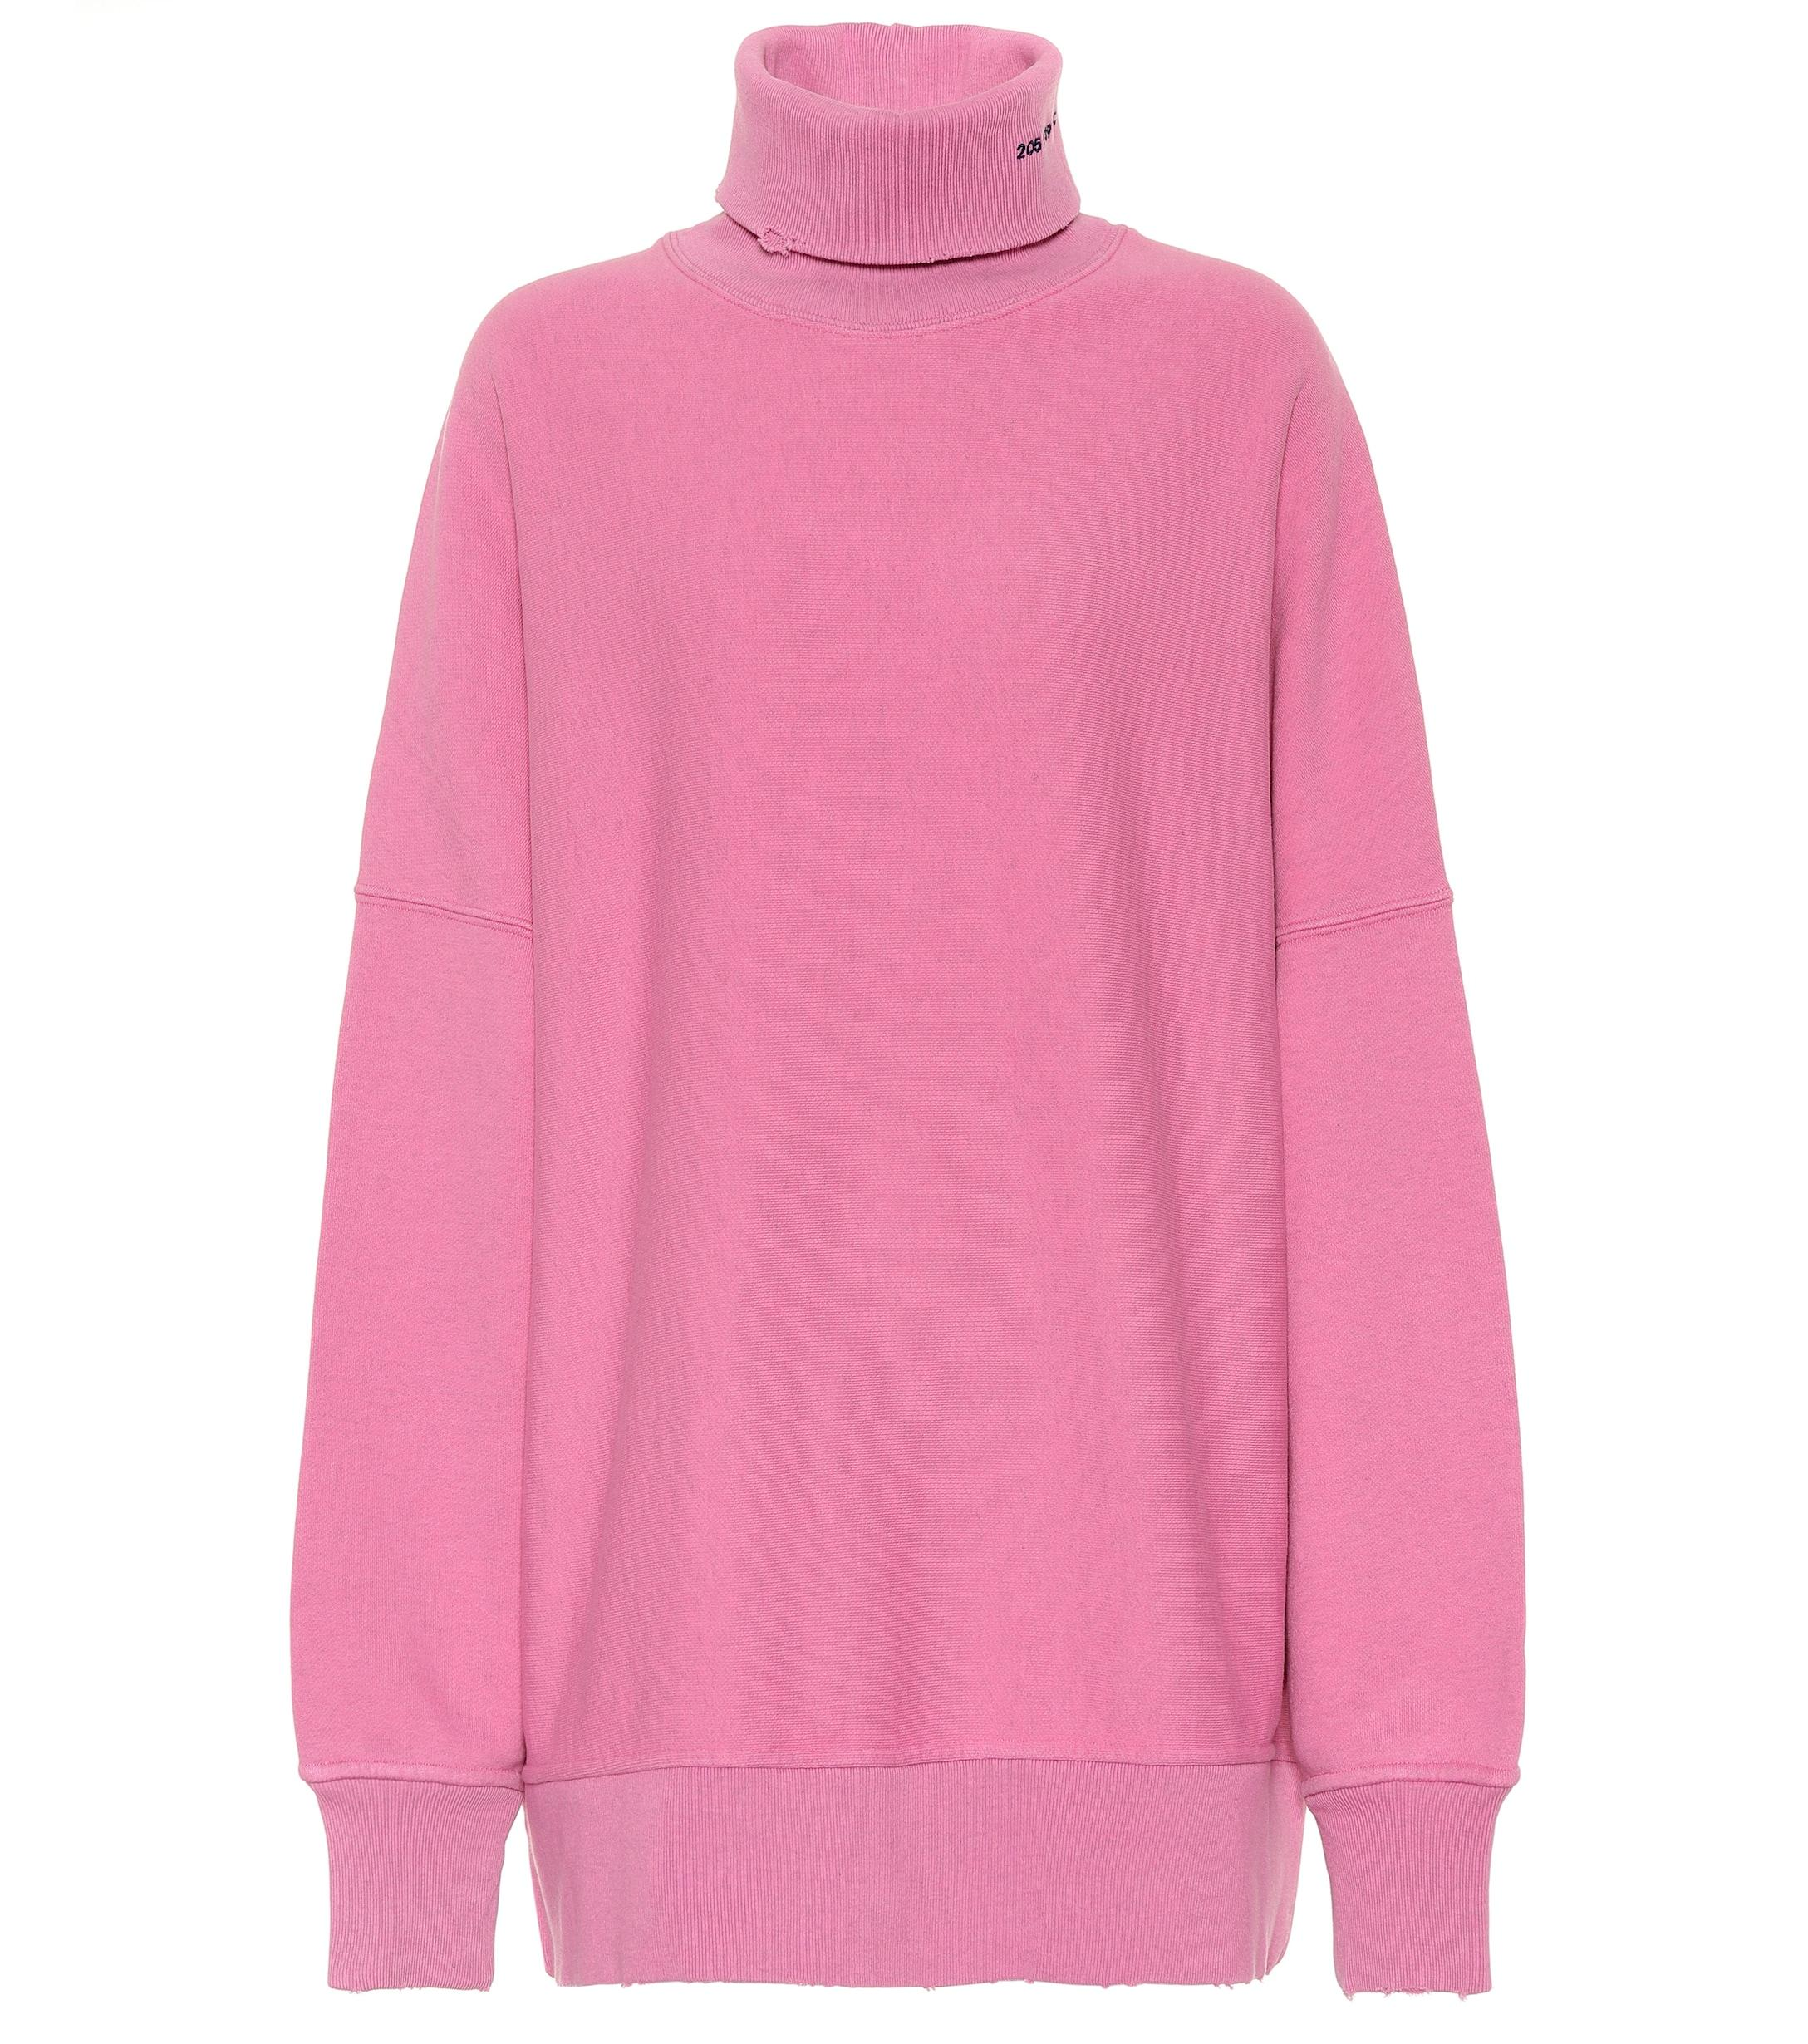 Lyst - CALVIN KLEIN 205W39NYC Oversized Logo Cotton Sweater in Pink 464e68a21